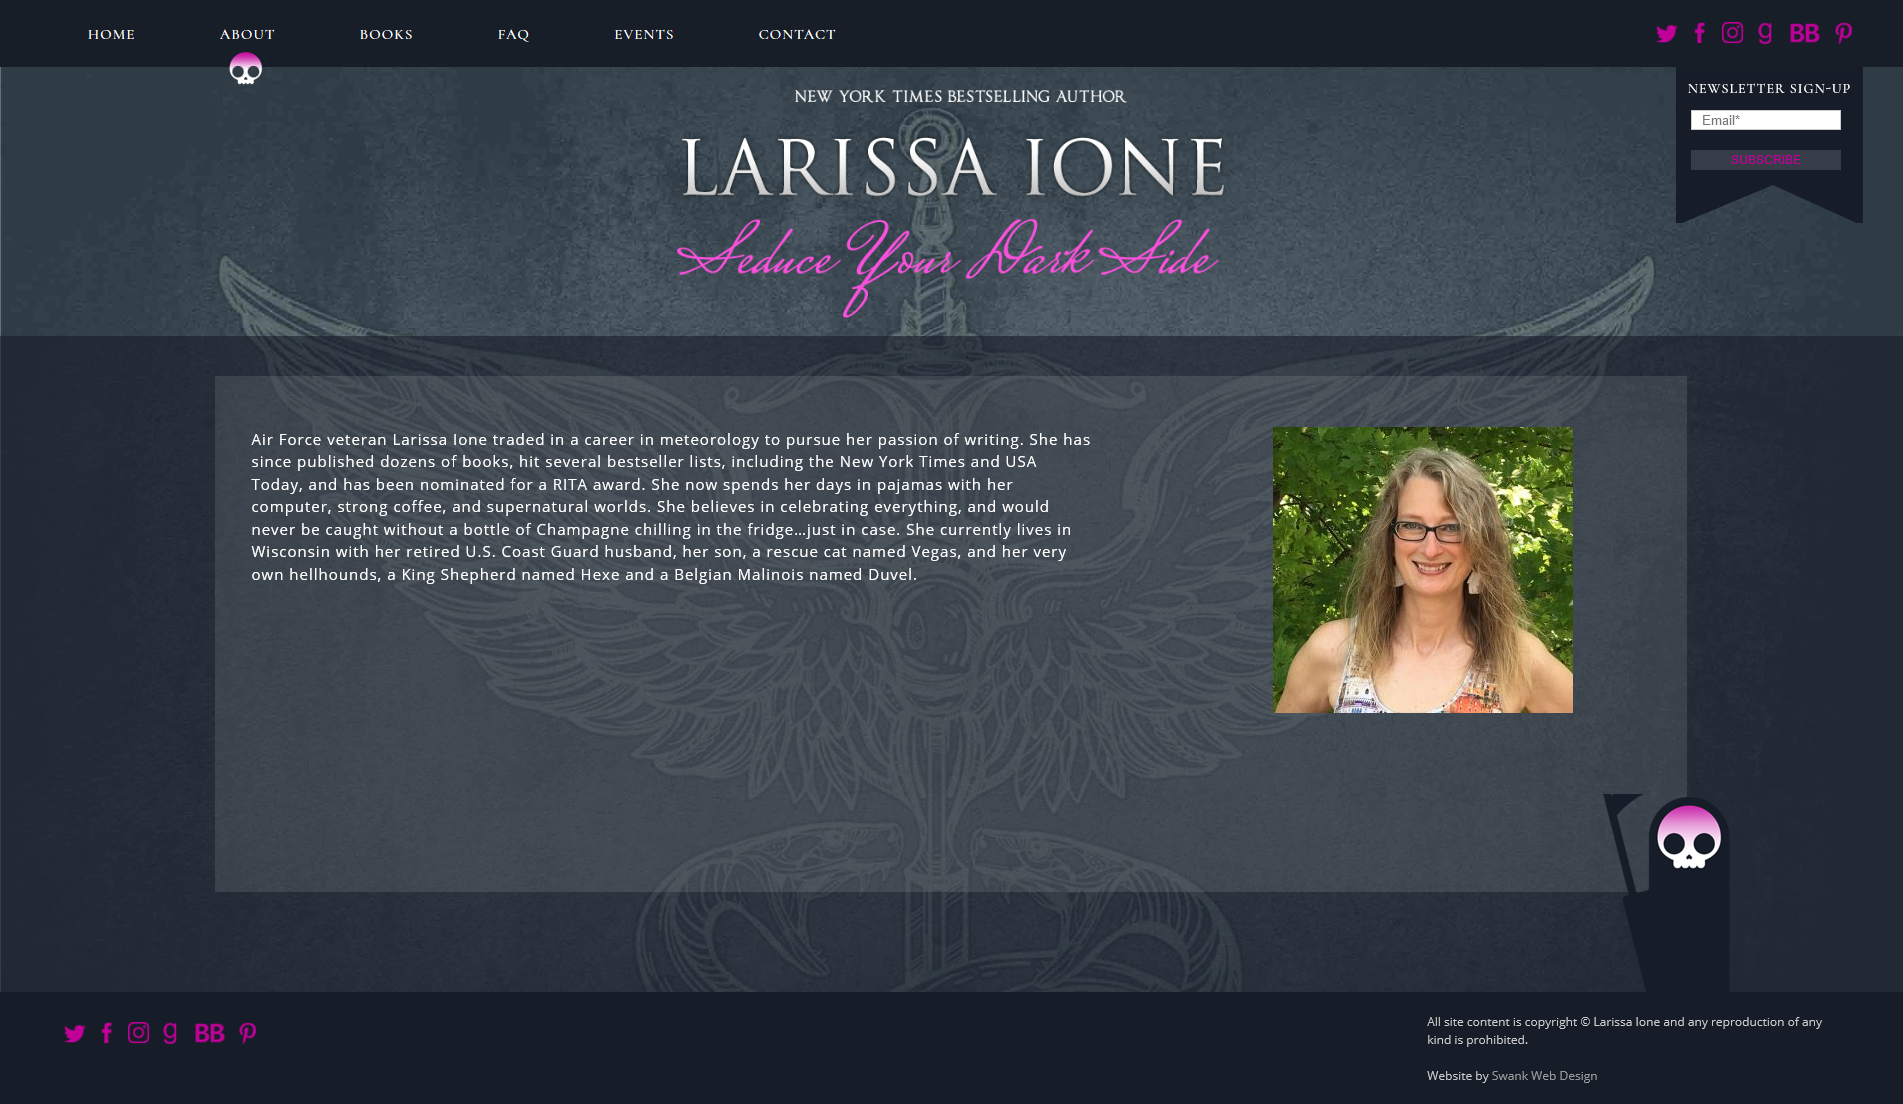 Website Design for Author Larissa Ione by Swank Web Design